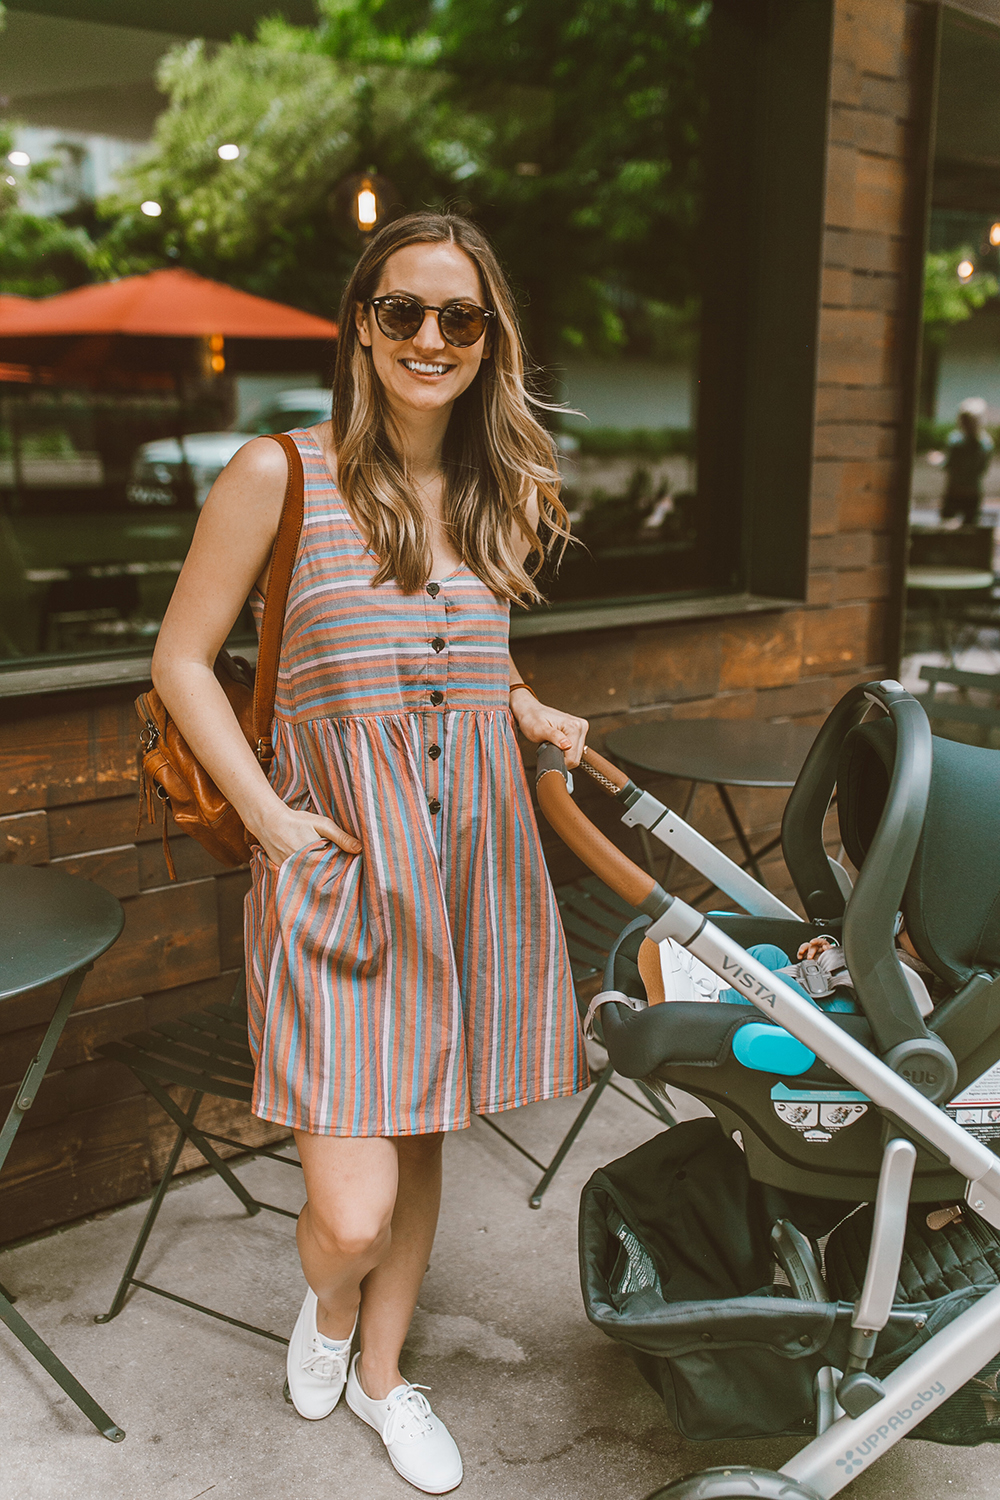 livvyland-blog-olivia-watson-austin-texas-lifestyle-fashion-motherhood-blogger-mommy-me-baby-boy-nordstrom-2